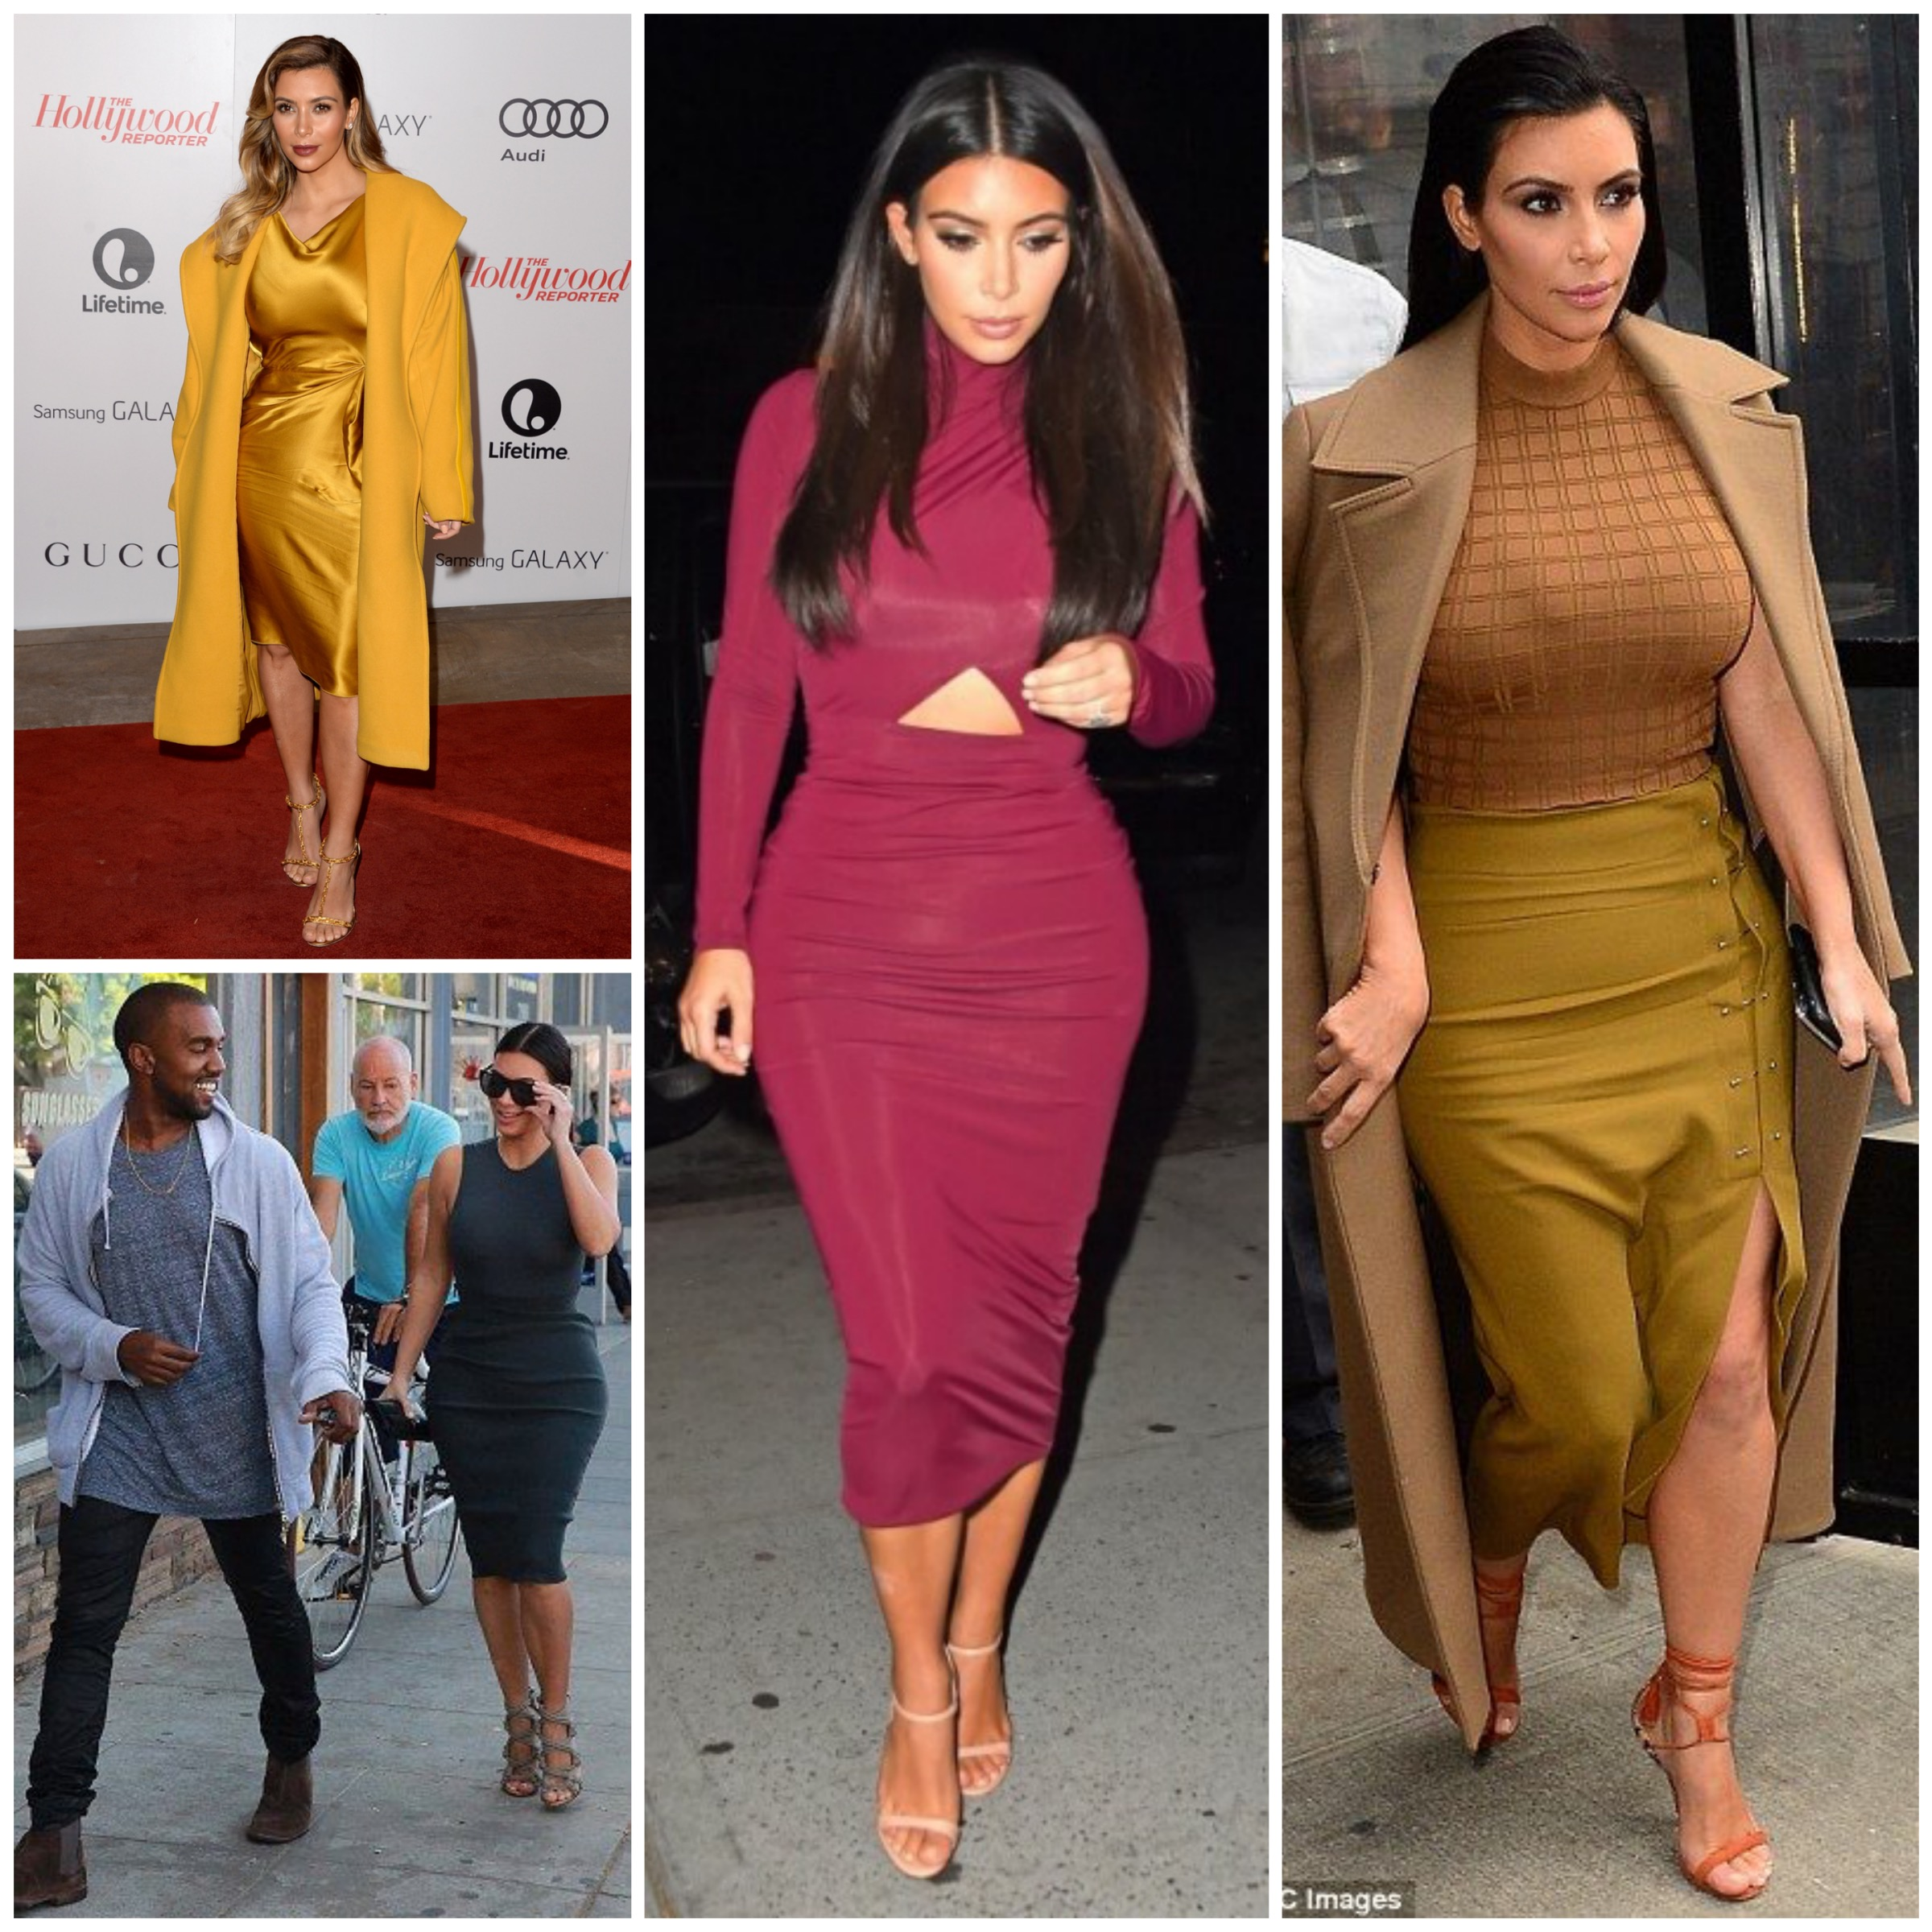 Kim's style after Kanye - Wearing skin-tight outfits in a classy way